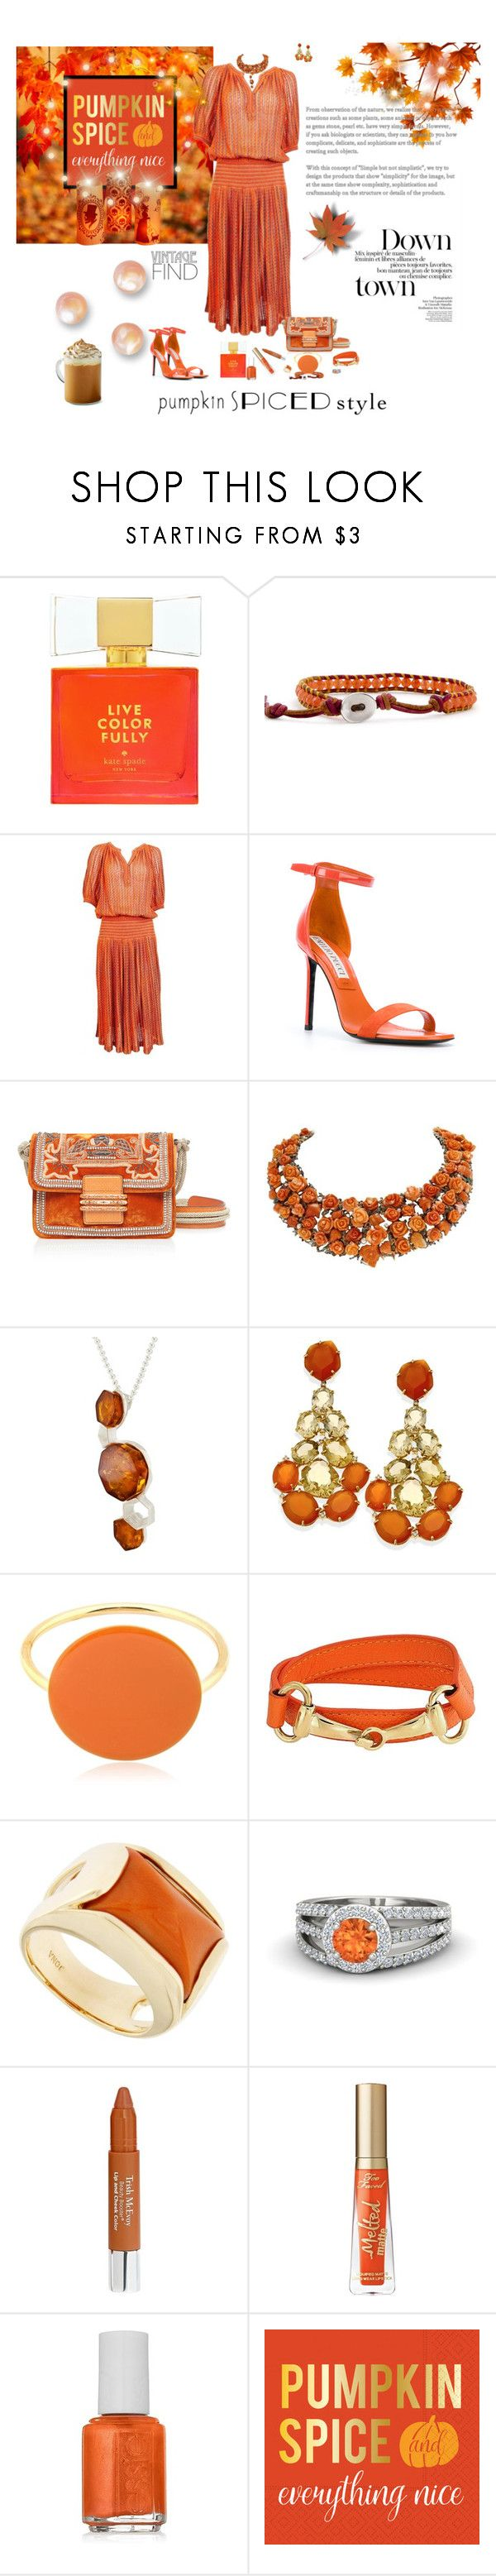 """Monochrome: Pumpkin Spice"" by deborah-518 ❤ liked on Polyvore featuring Kate Spade, Missoni, Emilio Pucci, Etro, Luise, Be-Jewelled, Isabel Marant, Bling Jewelry, Jona and Trish McEvoy"